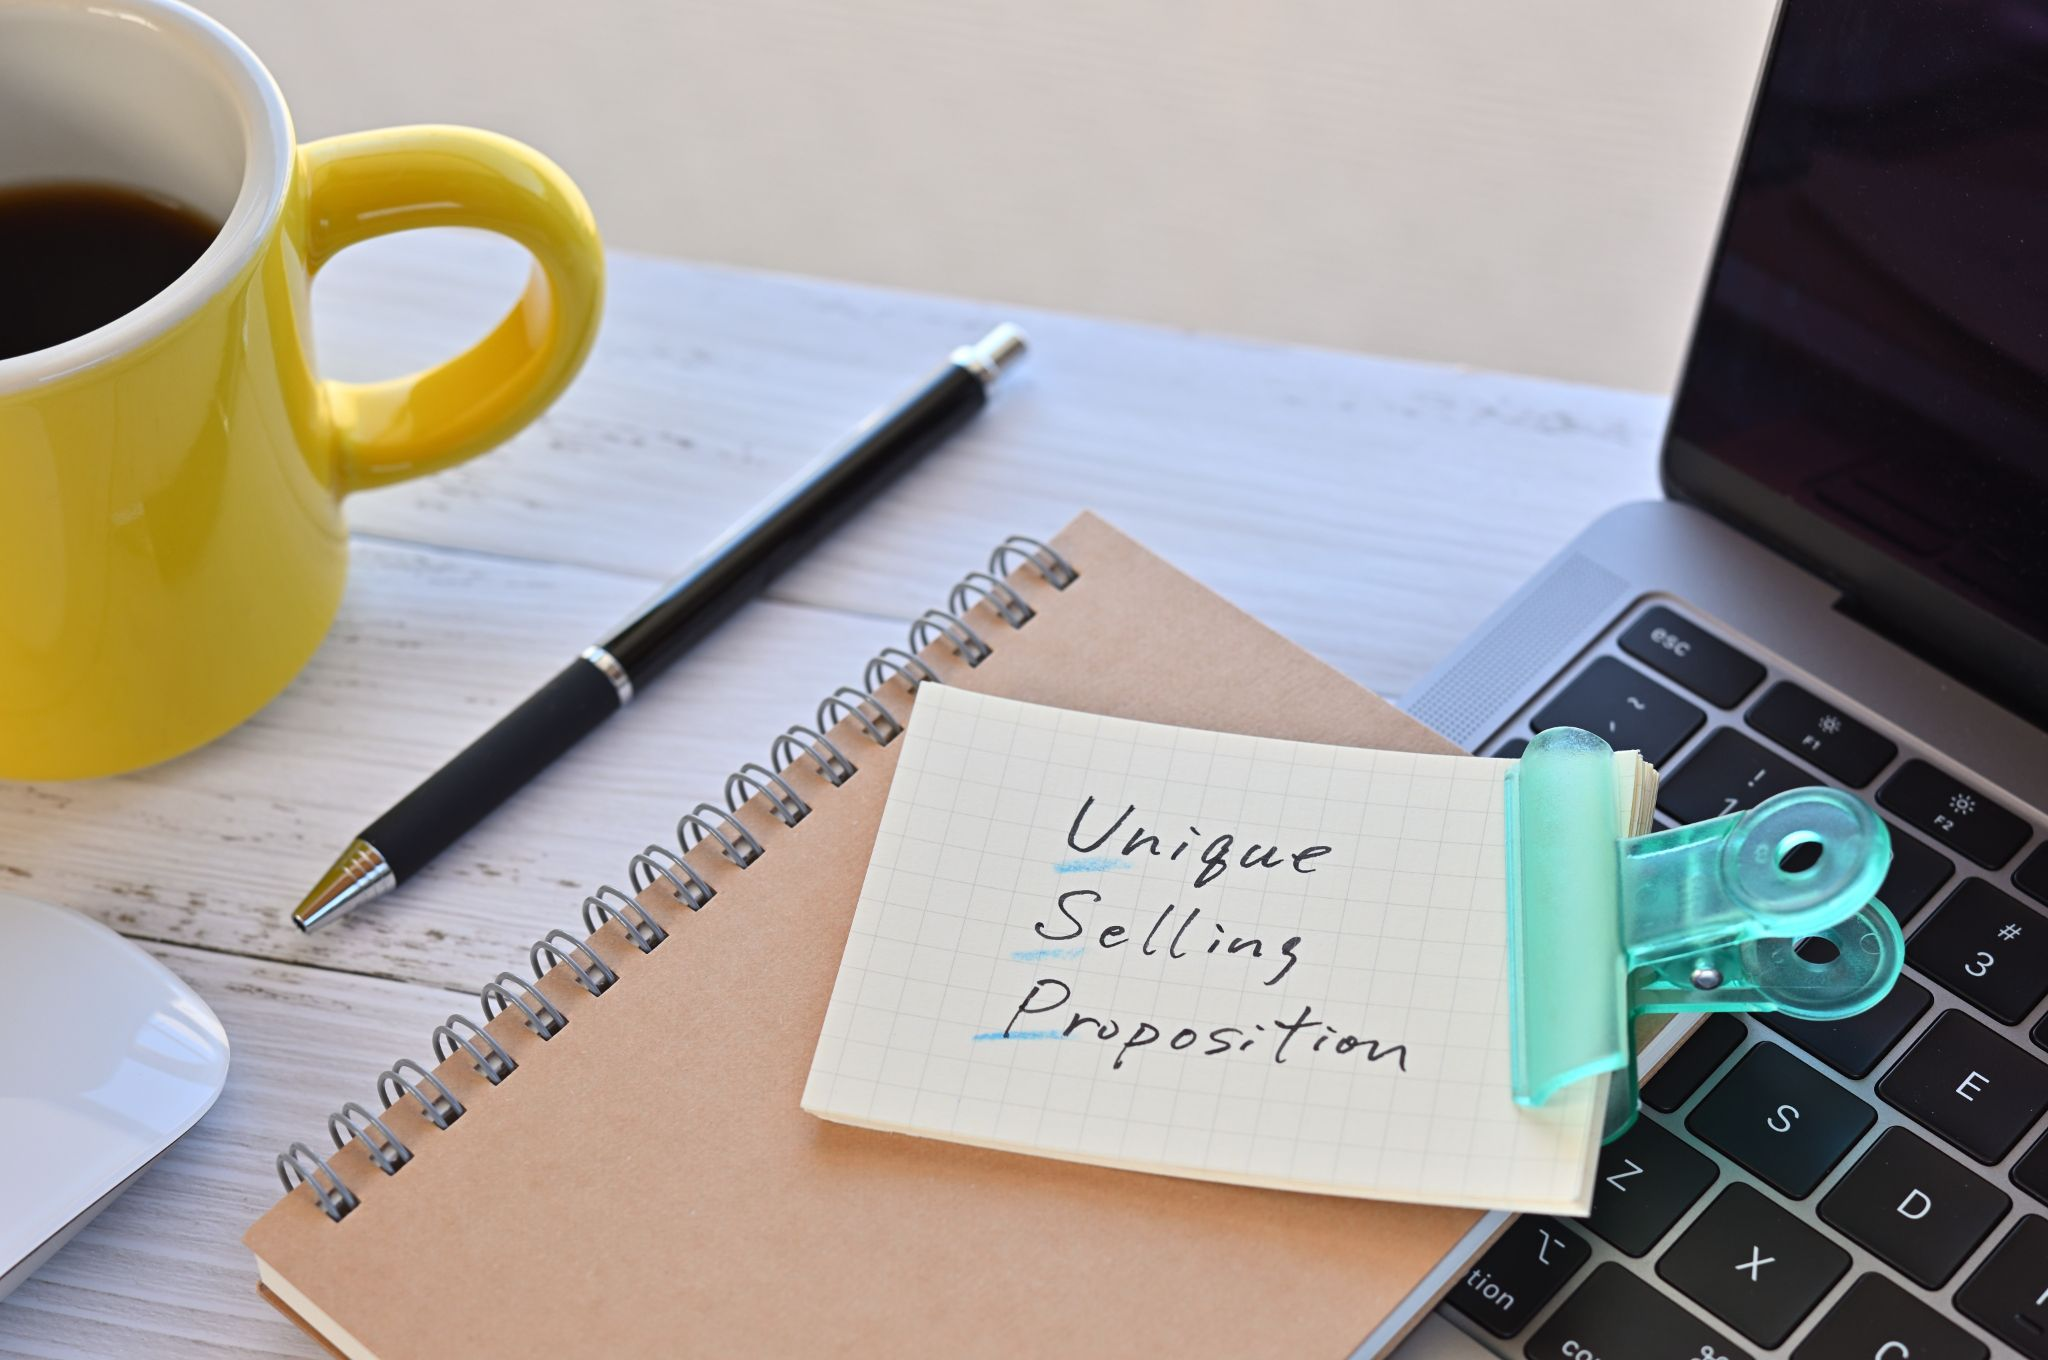 Note with Unique Selling Proposition written on it sitting on top of brown notepad and laptop. Next to it there is a yellow cup of black coffee and black pen